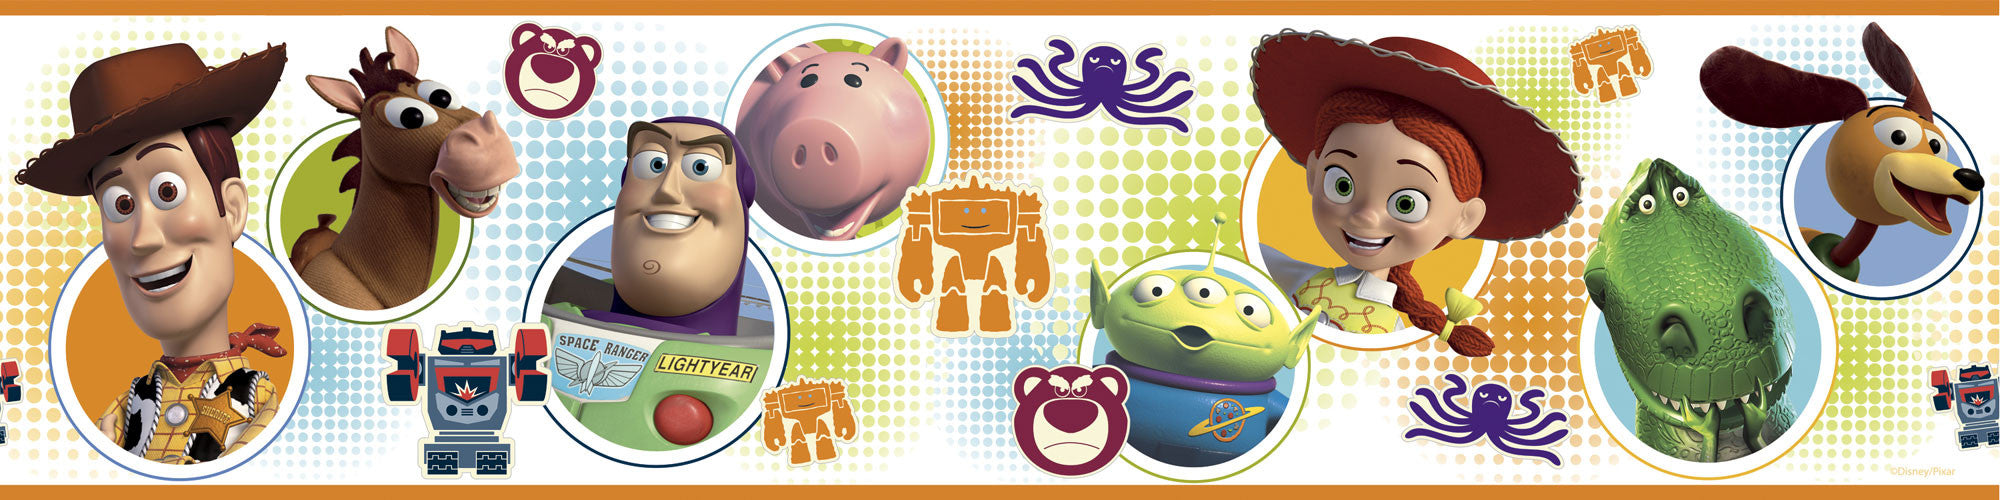 Toy Story 3 Peel & Stick Border (RMK1429BCS)